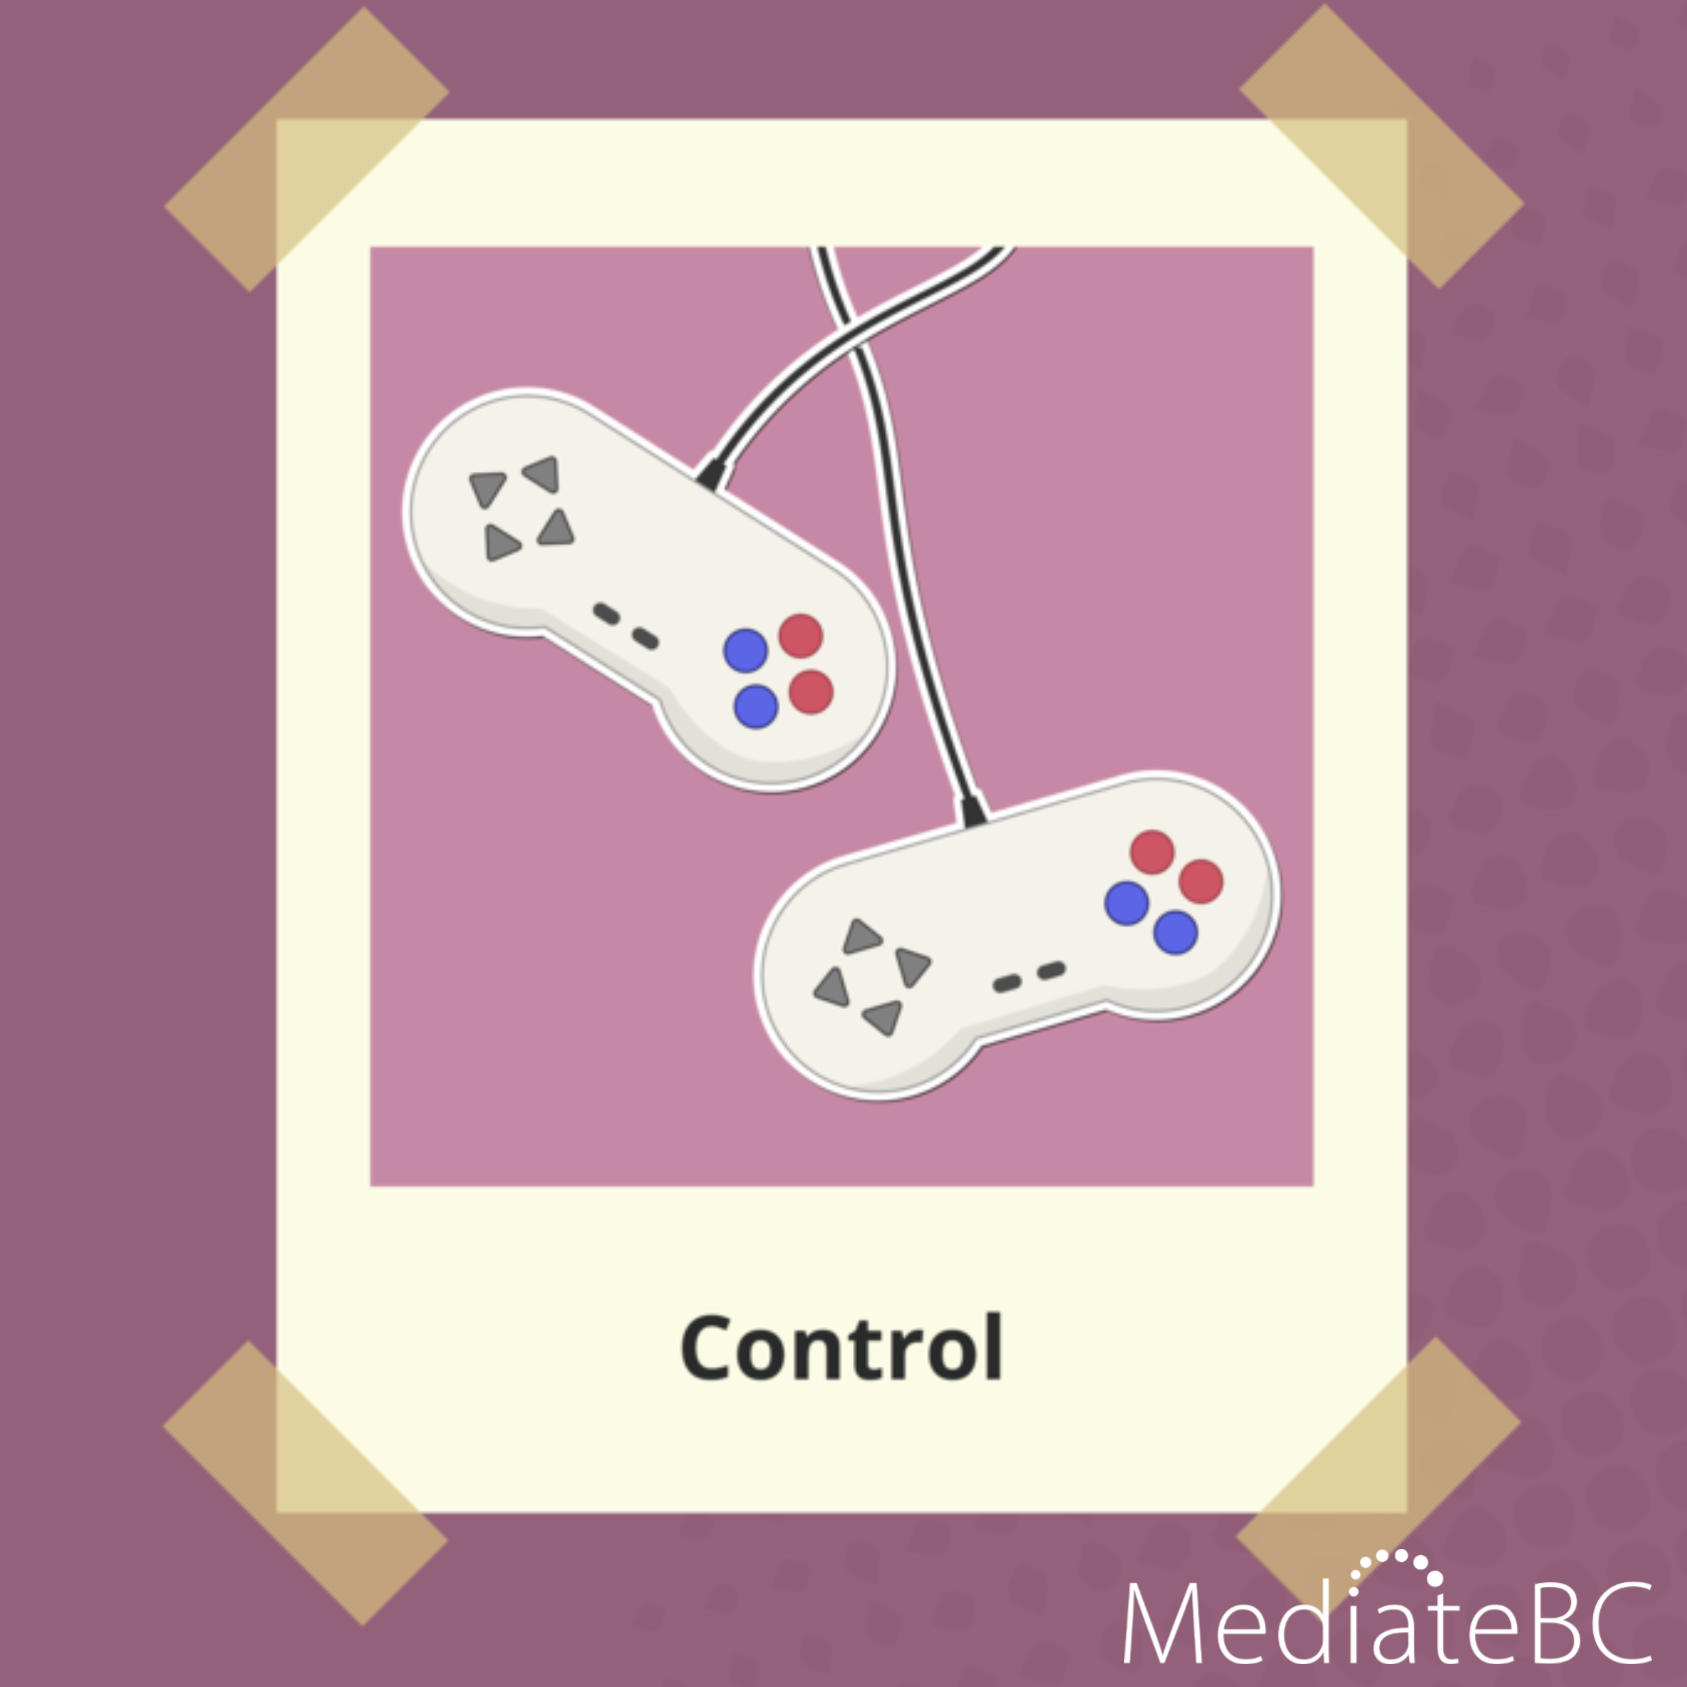 You control the outcome. The mediator helps you find a solution that works for everyone involved.